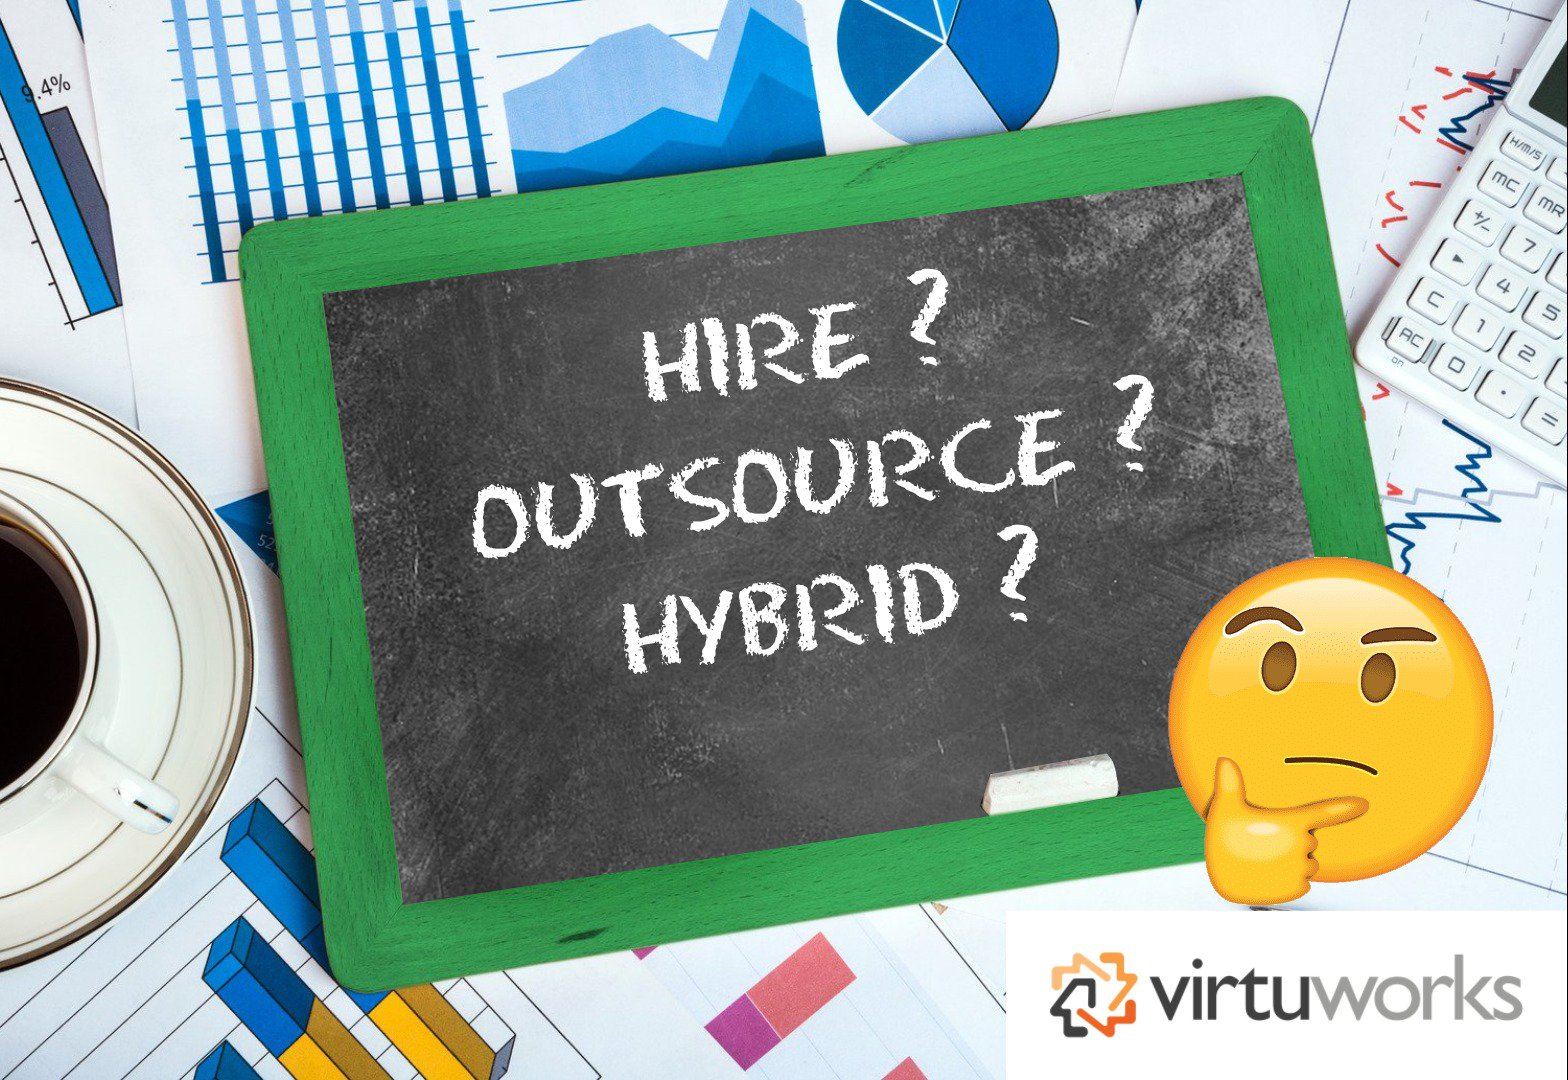 Outsourced IT, Internal IT, or both: Which is right for you?